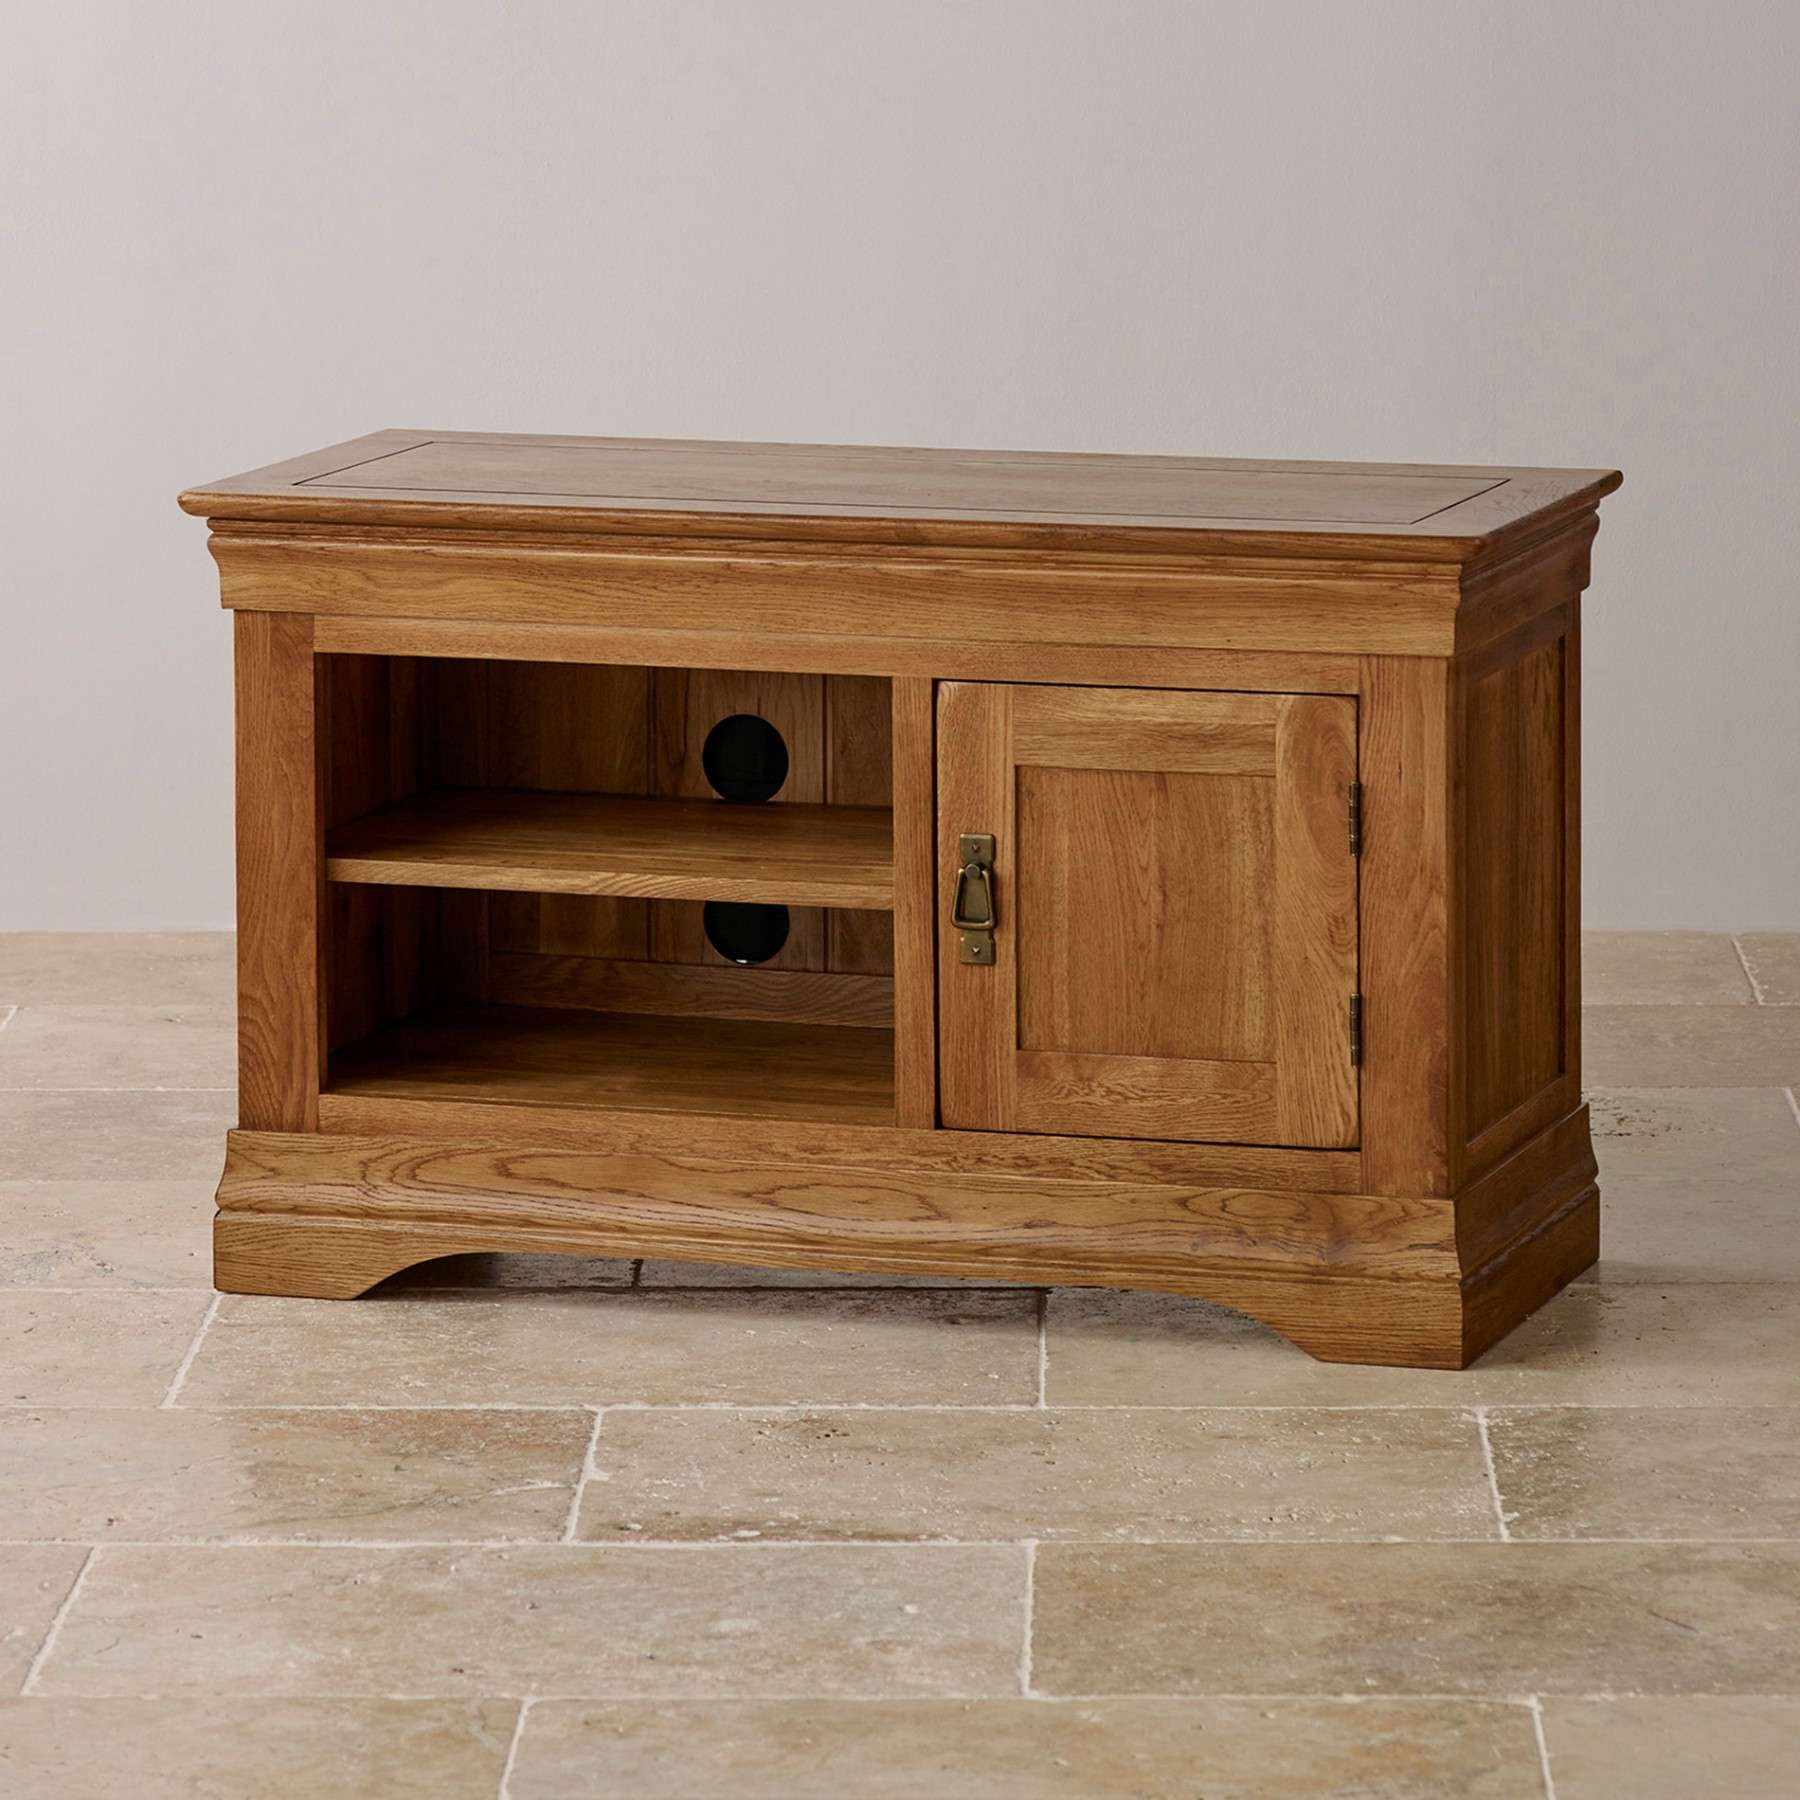 French Farmhouse Rustic Solid Oak Small Tv Stand Oak Furniture Land With Rustic Oak Tv Stands (View 4 of 15)